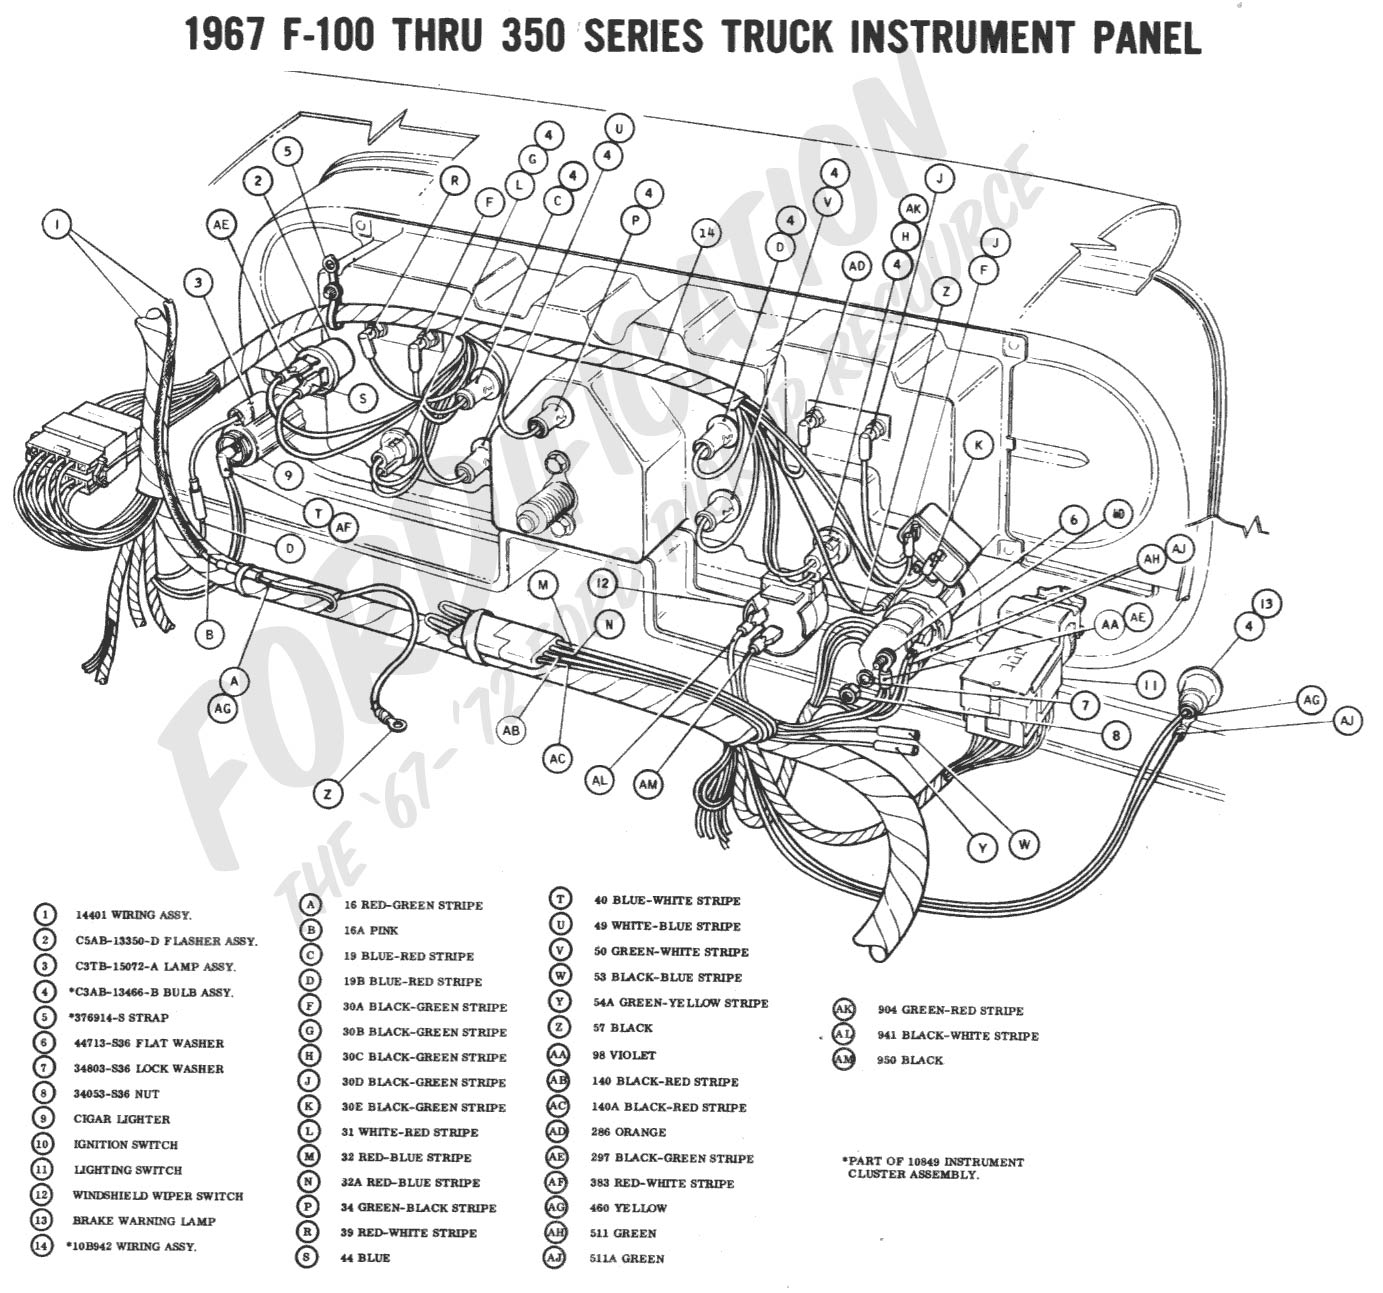 1930 Model A Ford Generator Wiring Diagrams Trusted Diagram F150 1932 V8 Product U2022 T